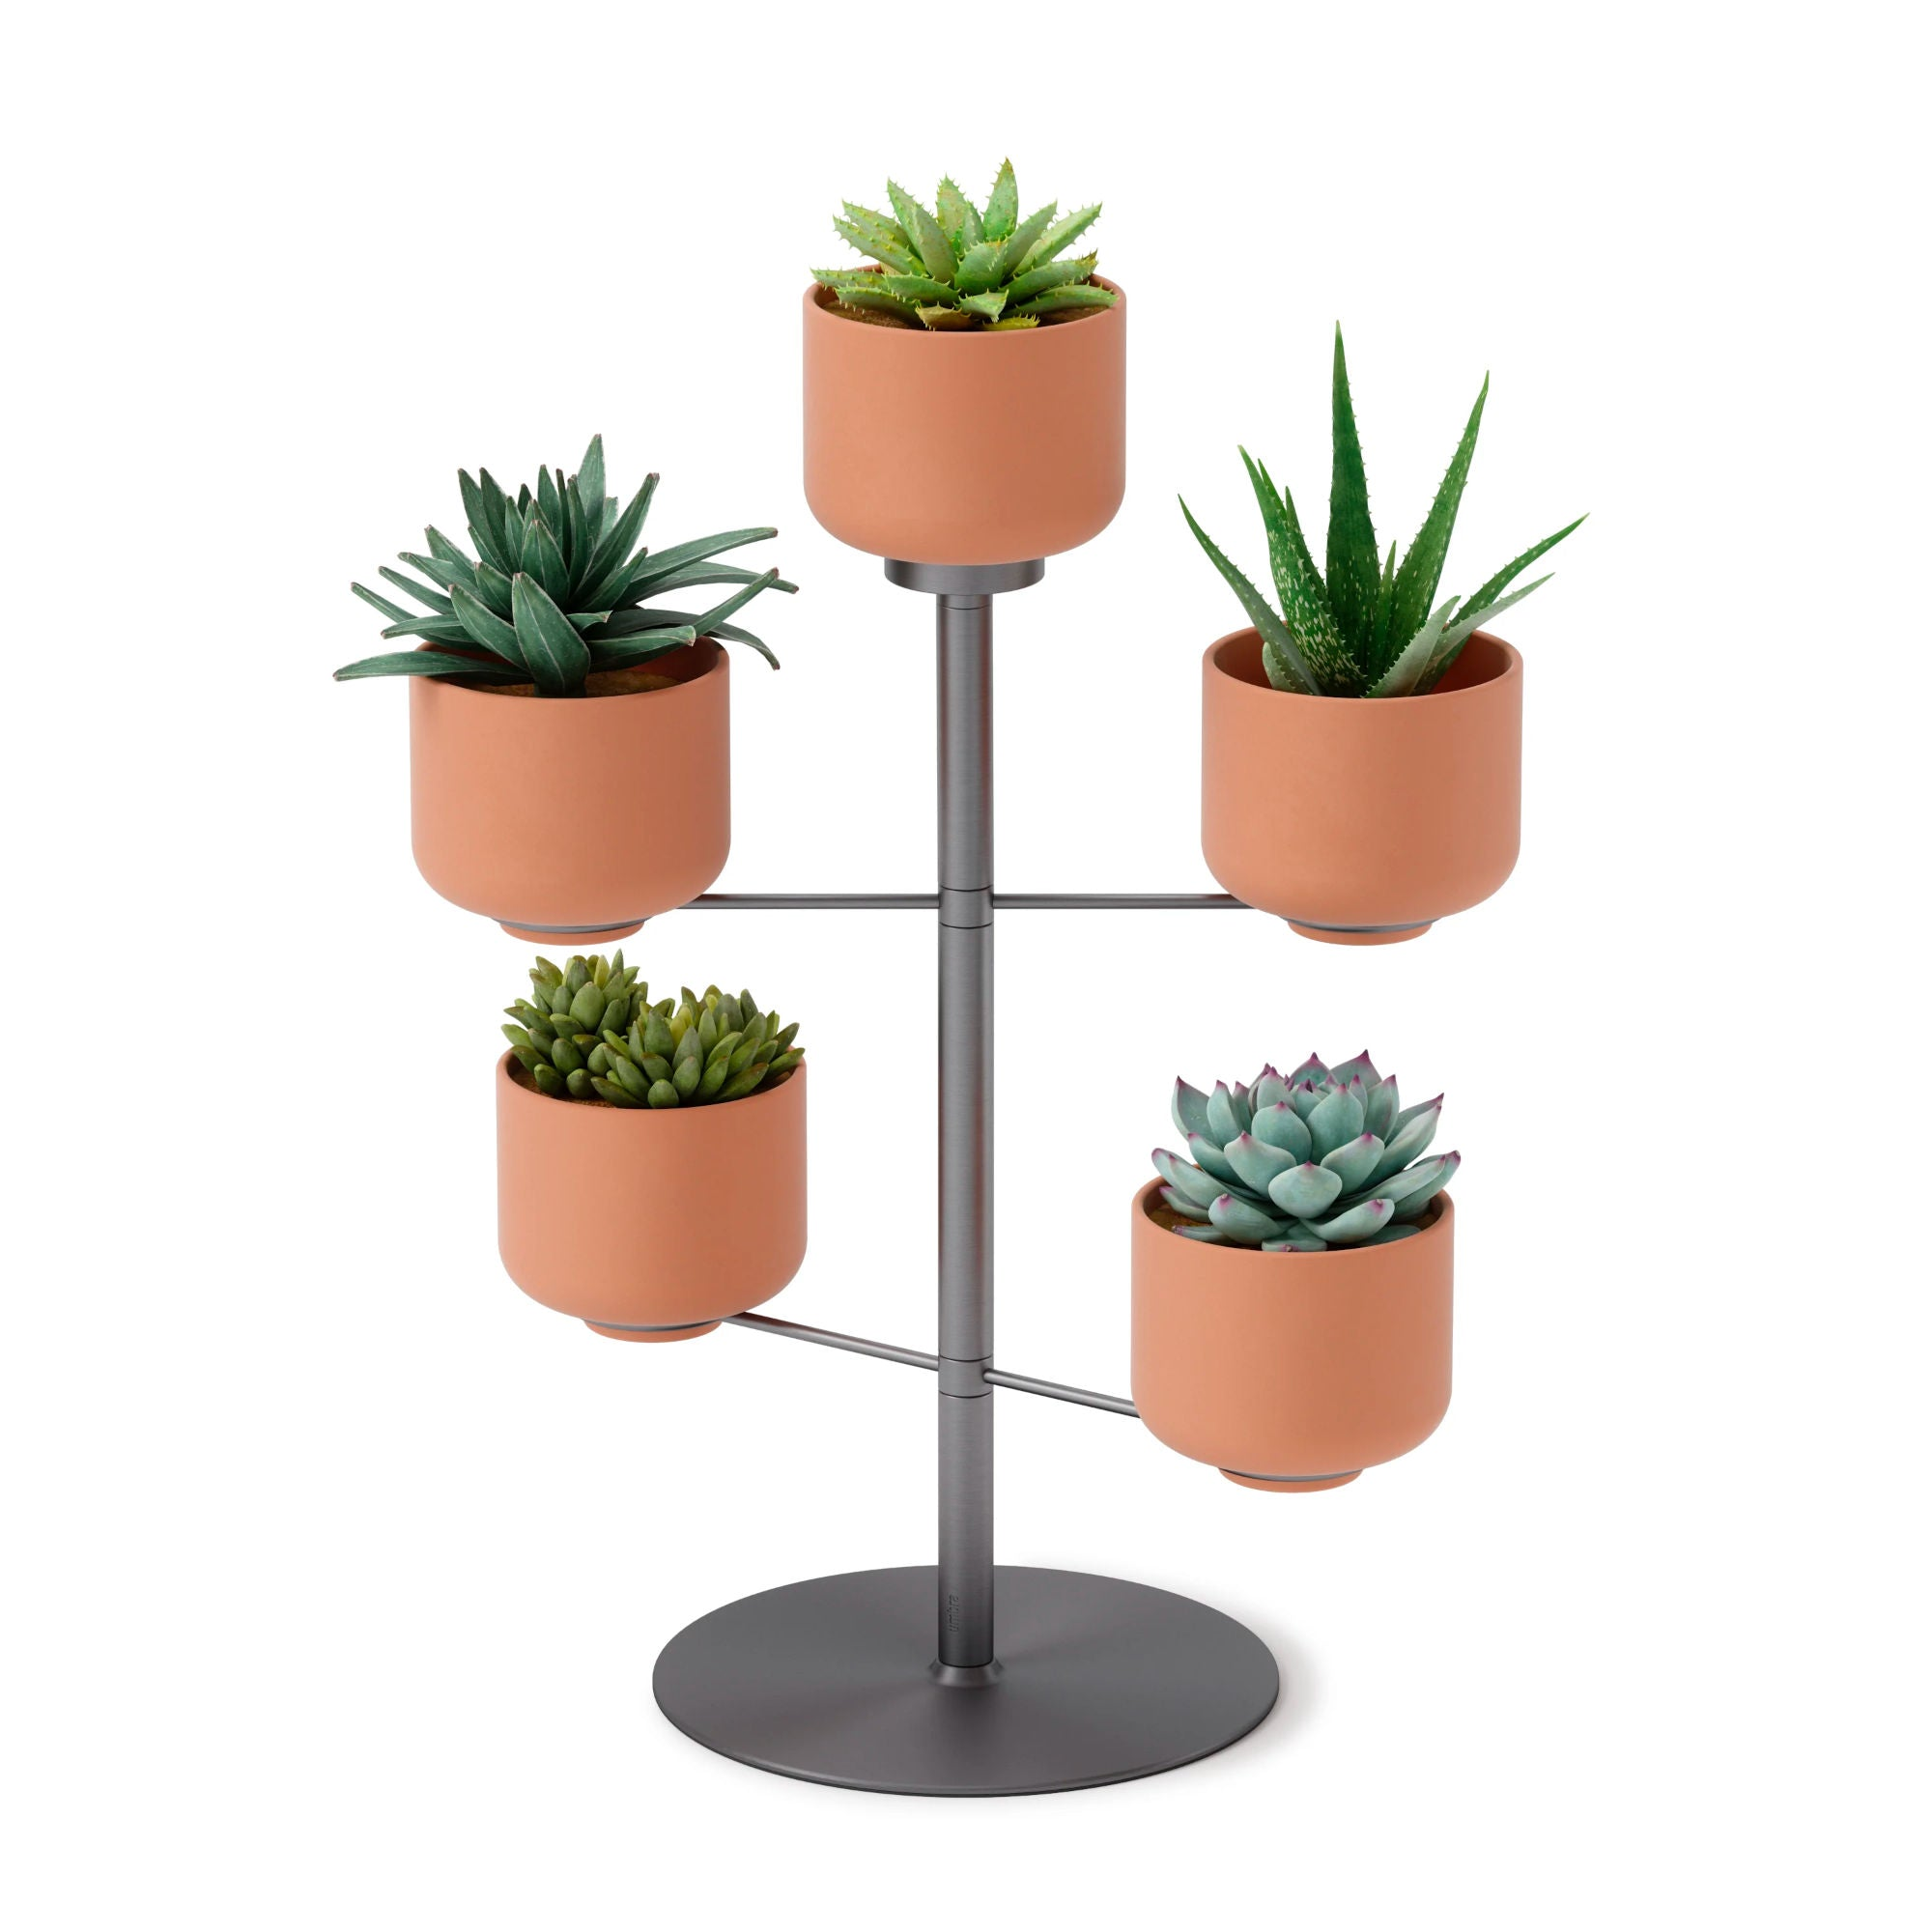 Umbra Terrapotta Terracotta Pot Planter